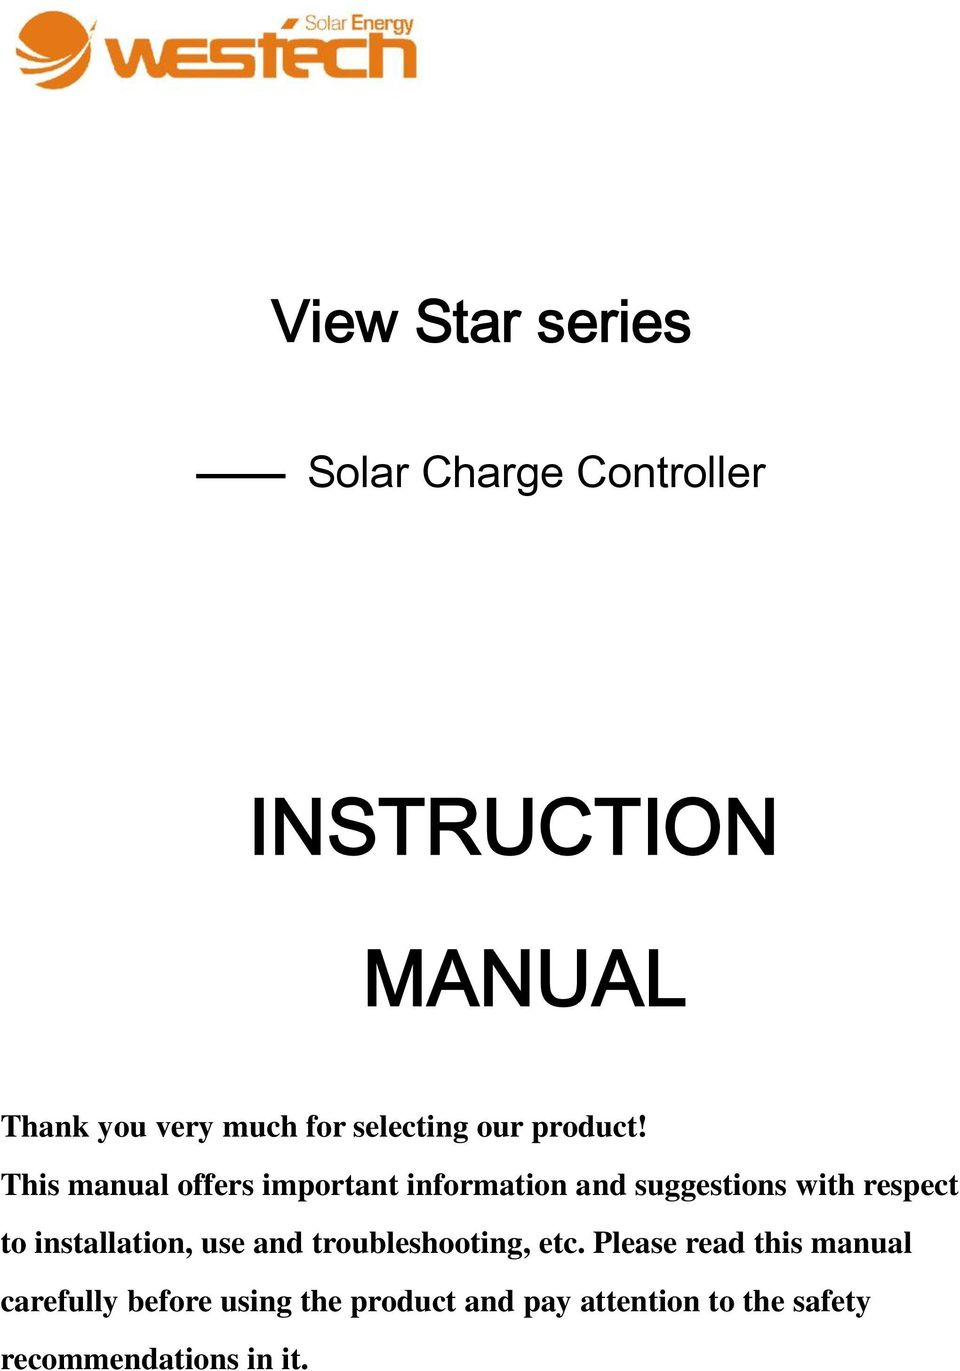 This manual offers important information and suggestions with respect to